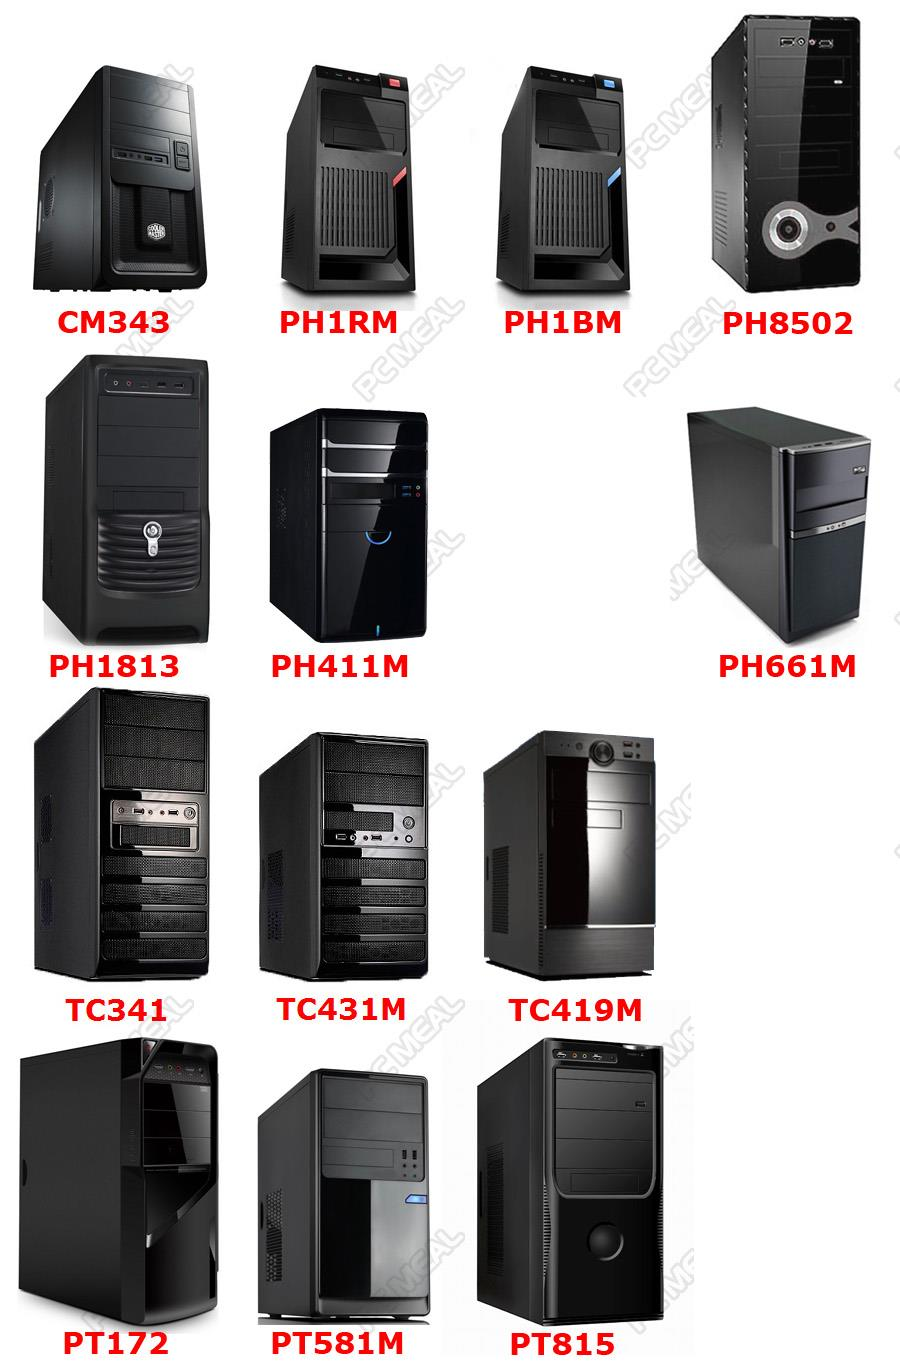 http://www.pcmeal.com/ebay/ComputerSystem/WideTECH/1007221829383091CS503_301.jpg